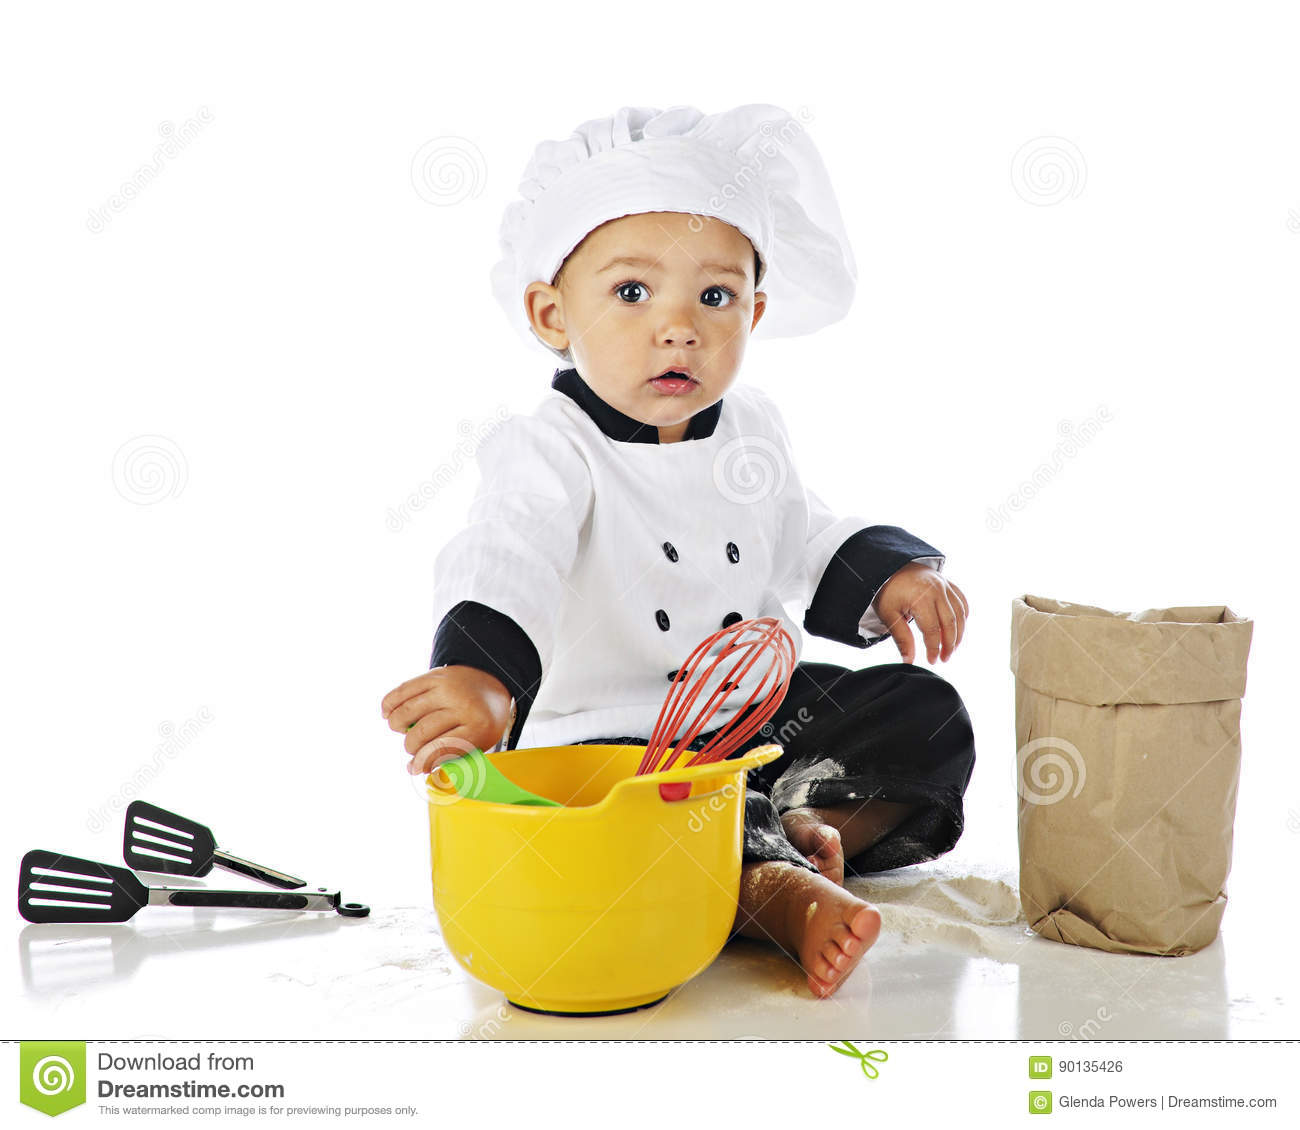 9e56c22fc Adorable Baby Chef stock photo. Image of small, outfit - 90135426